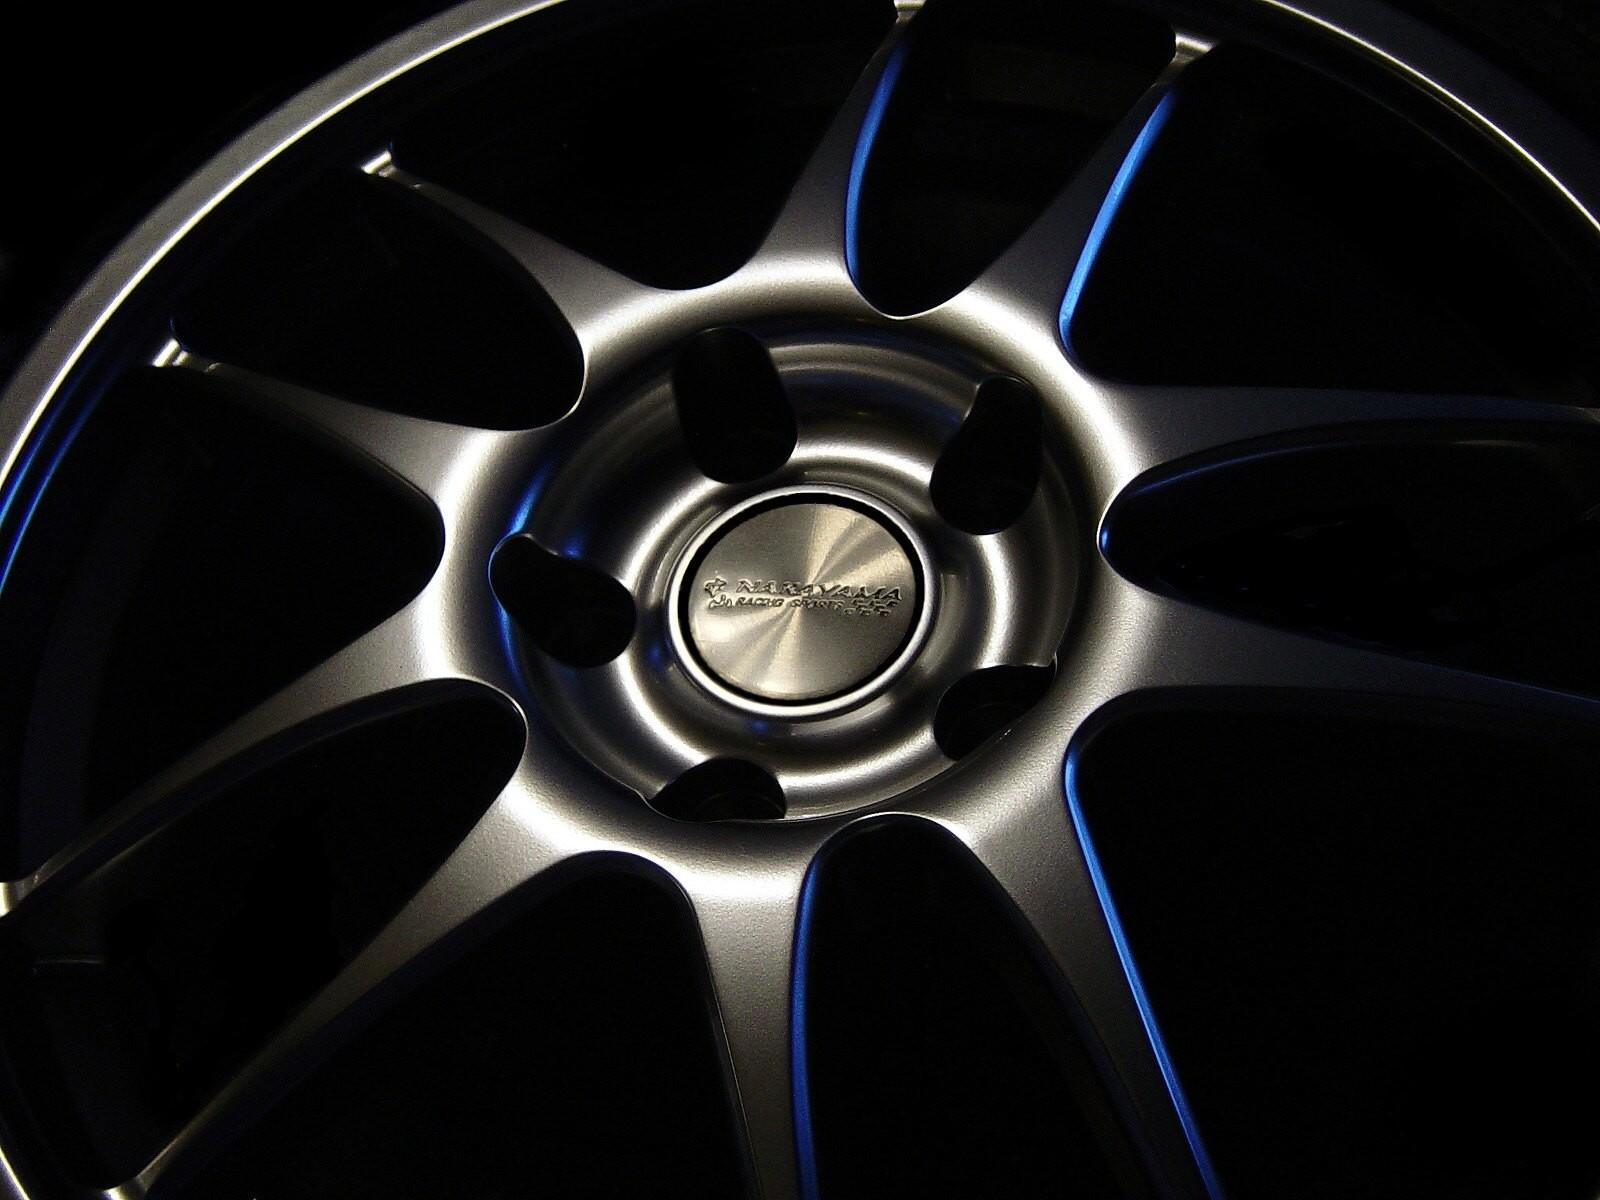 HD Rim Wheel Wallpapers ~ Desktop Wallpapers